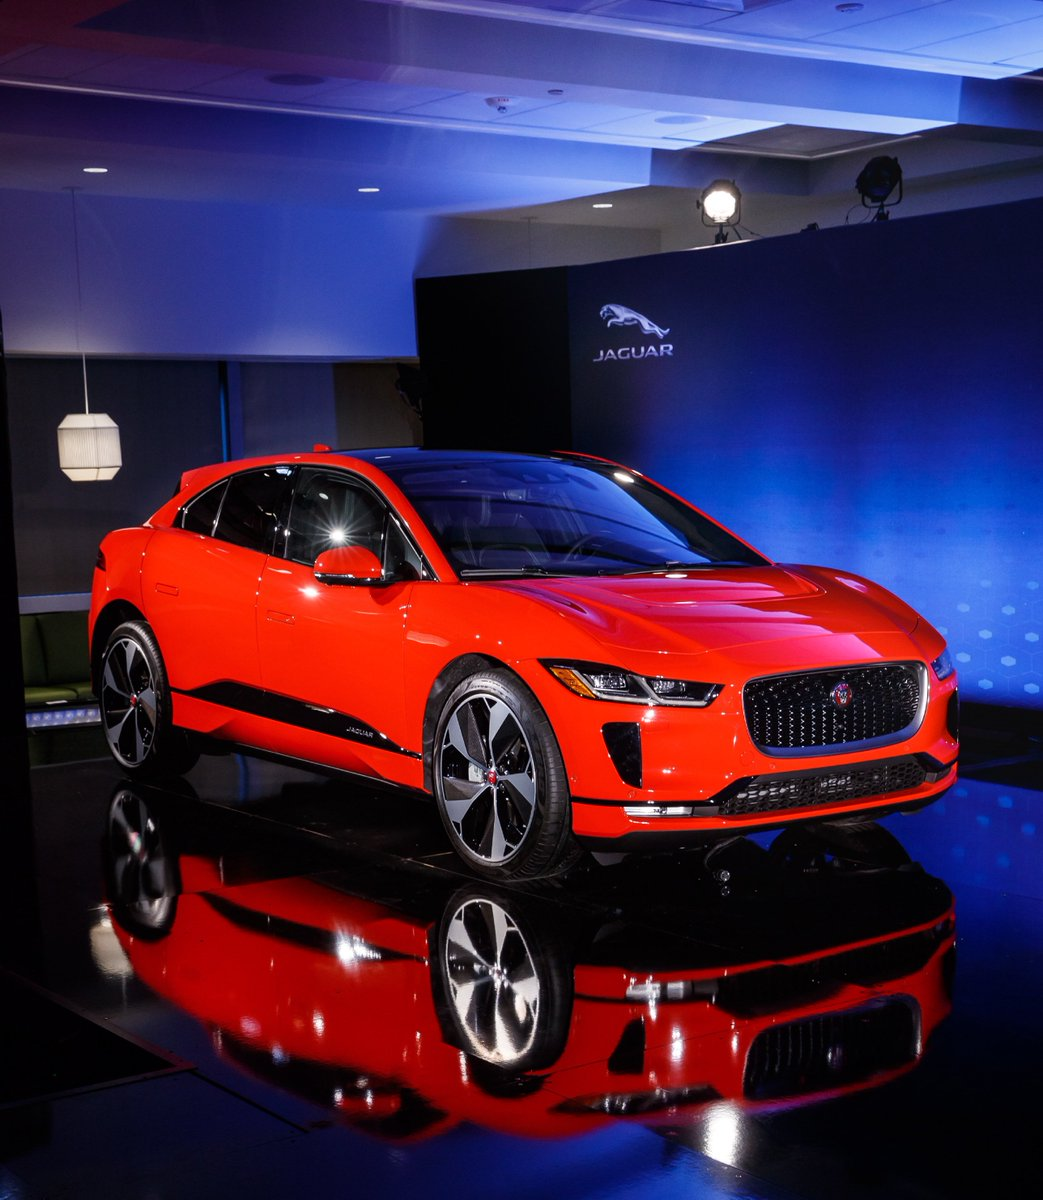 Electric city. #IPACE Similar to the technology found in the I?TYPE #FormulaE racing car, the motors in the I-PACE generate 394 HP and 512 Lb-Ft of torque. Feel the charge for yourself at the @nyautoshow, March 30-April 8 #NYIAS https://t.co/iadYknP9bT